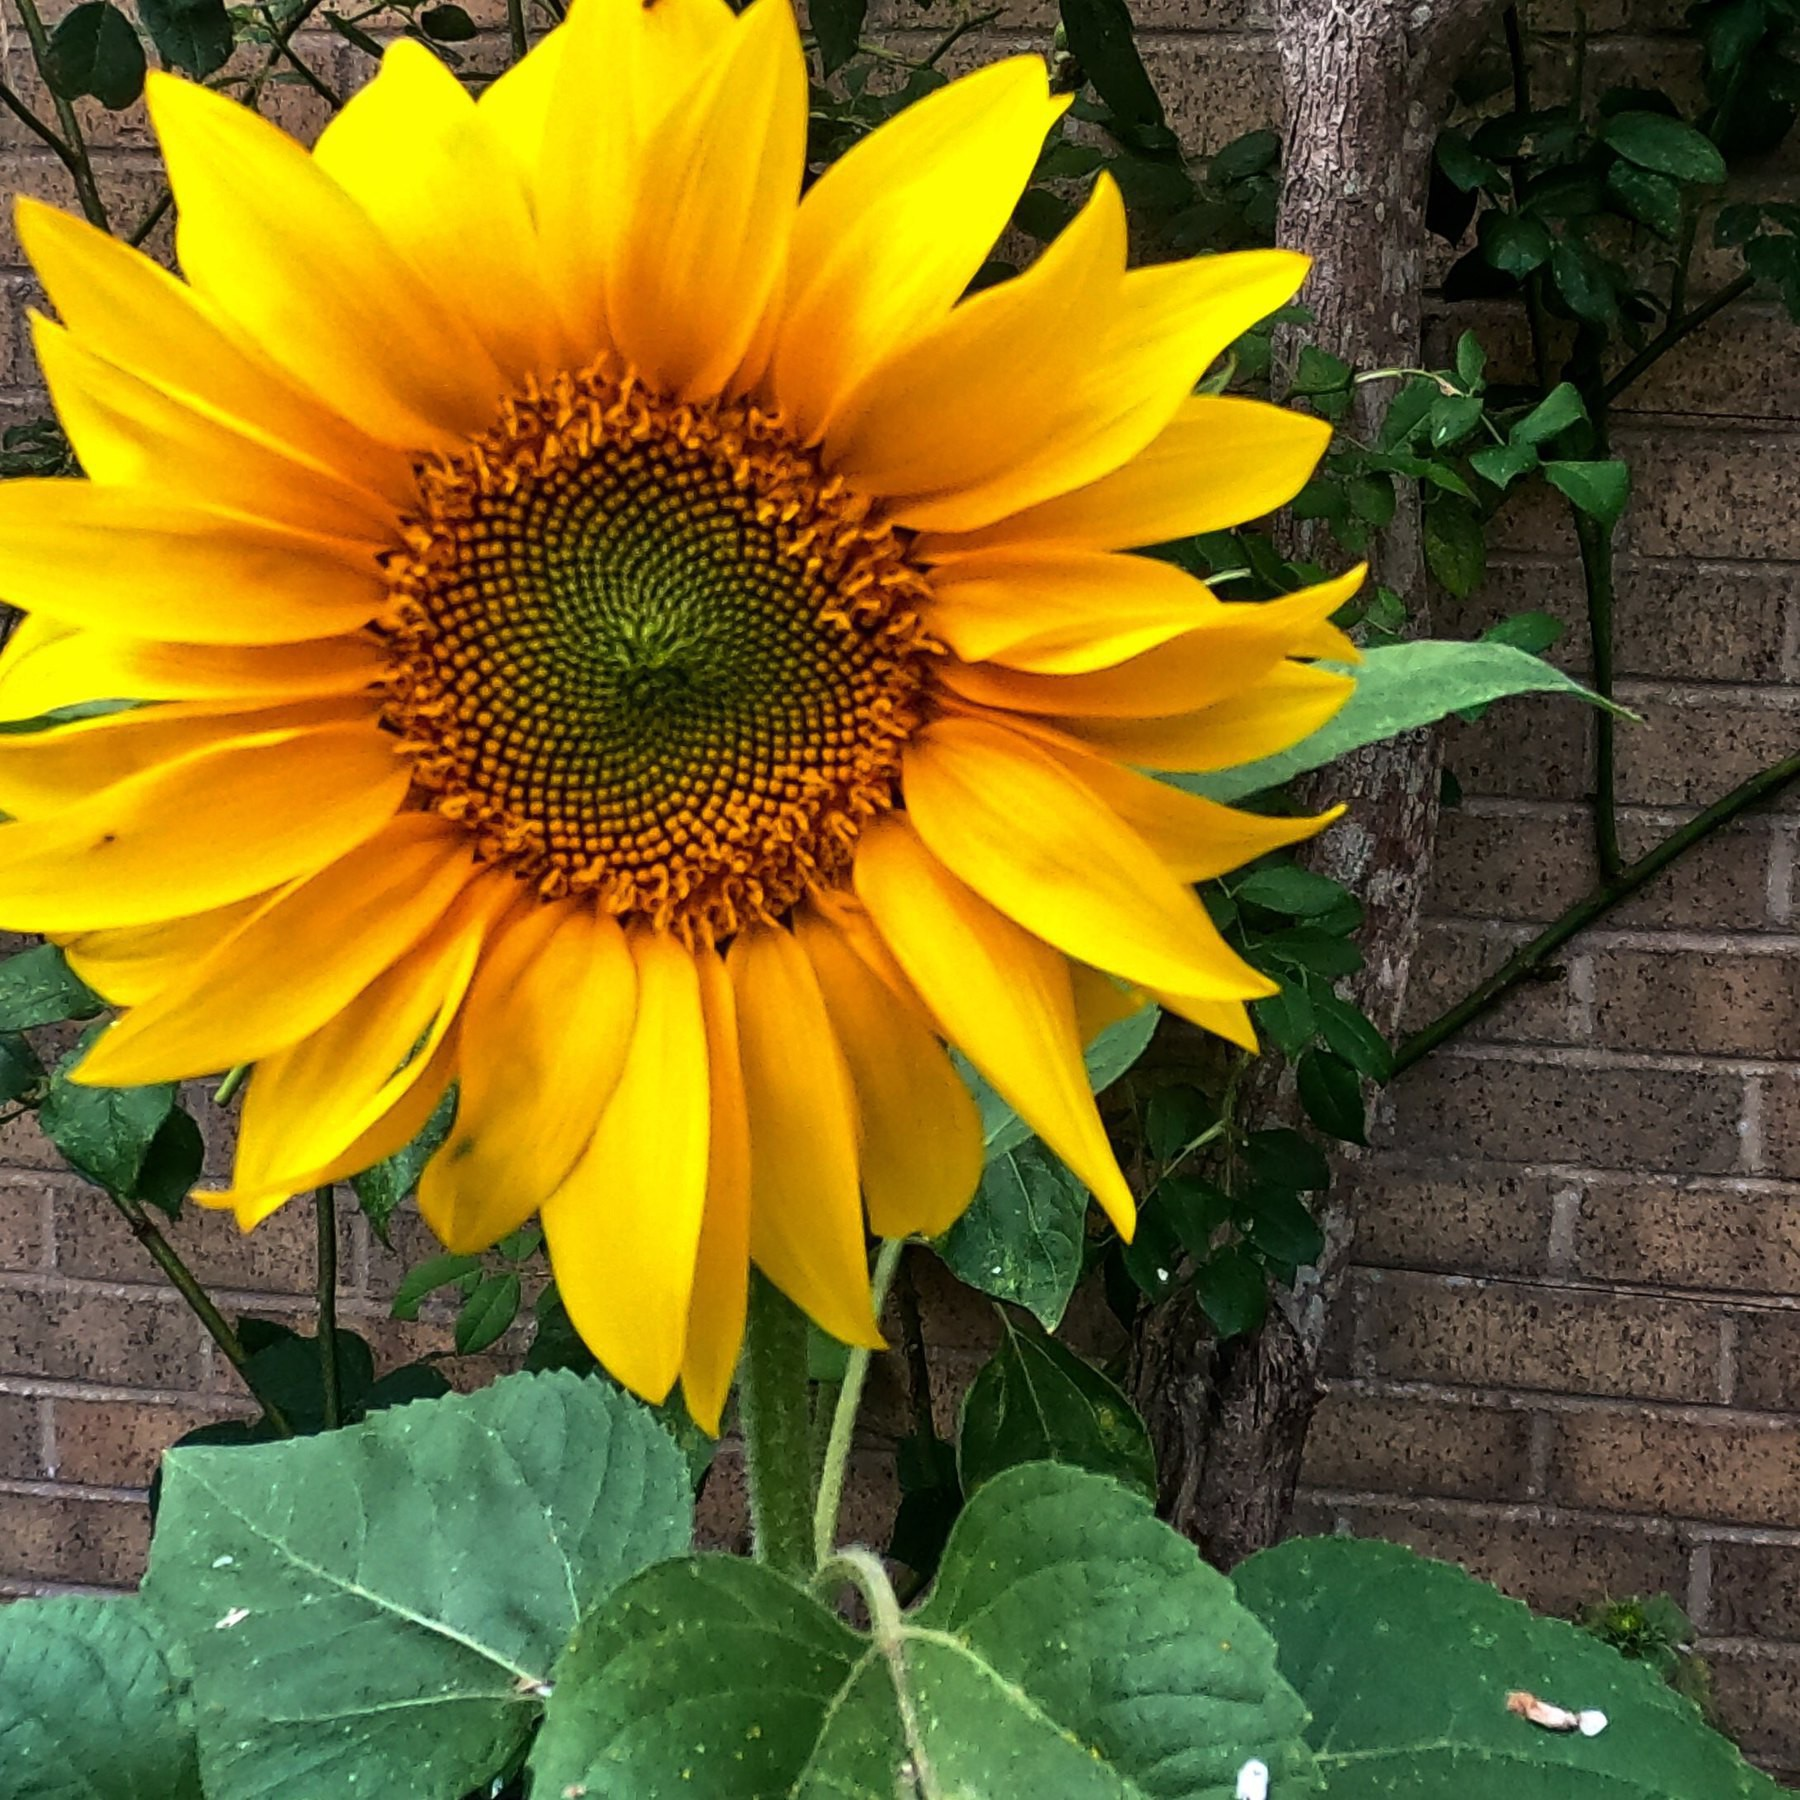 A sunflower in the back garden.